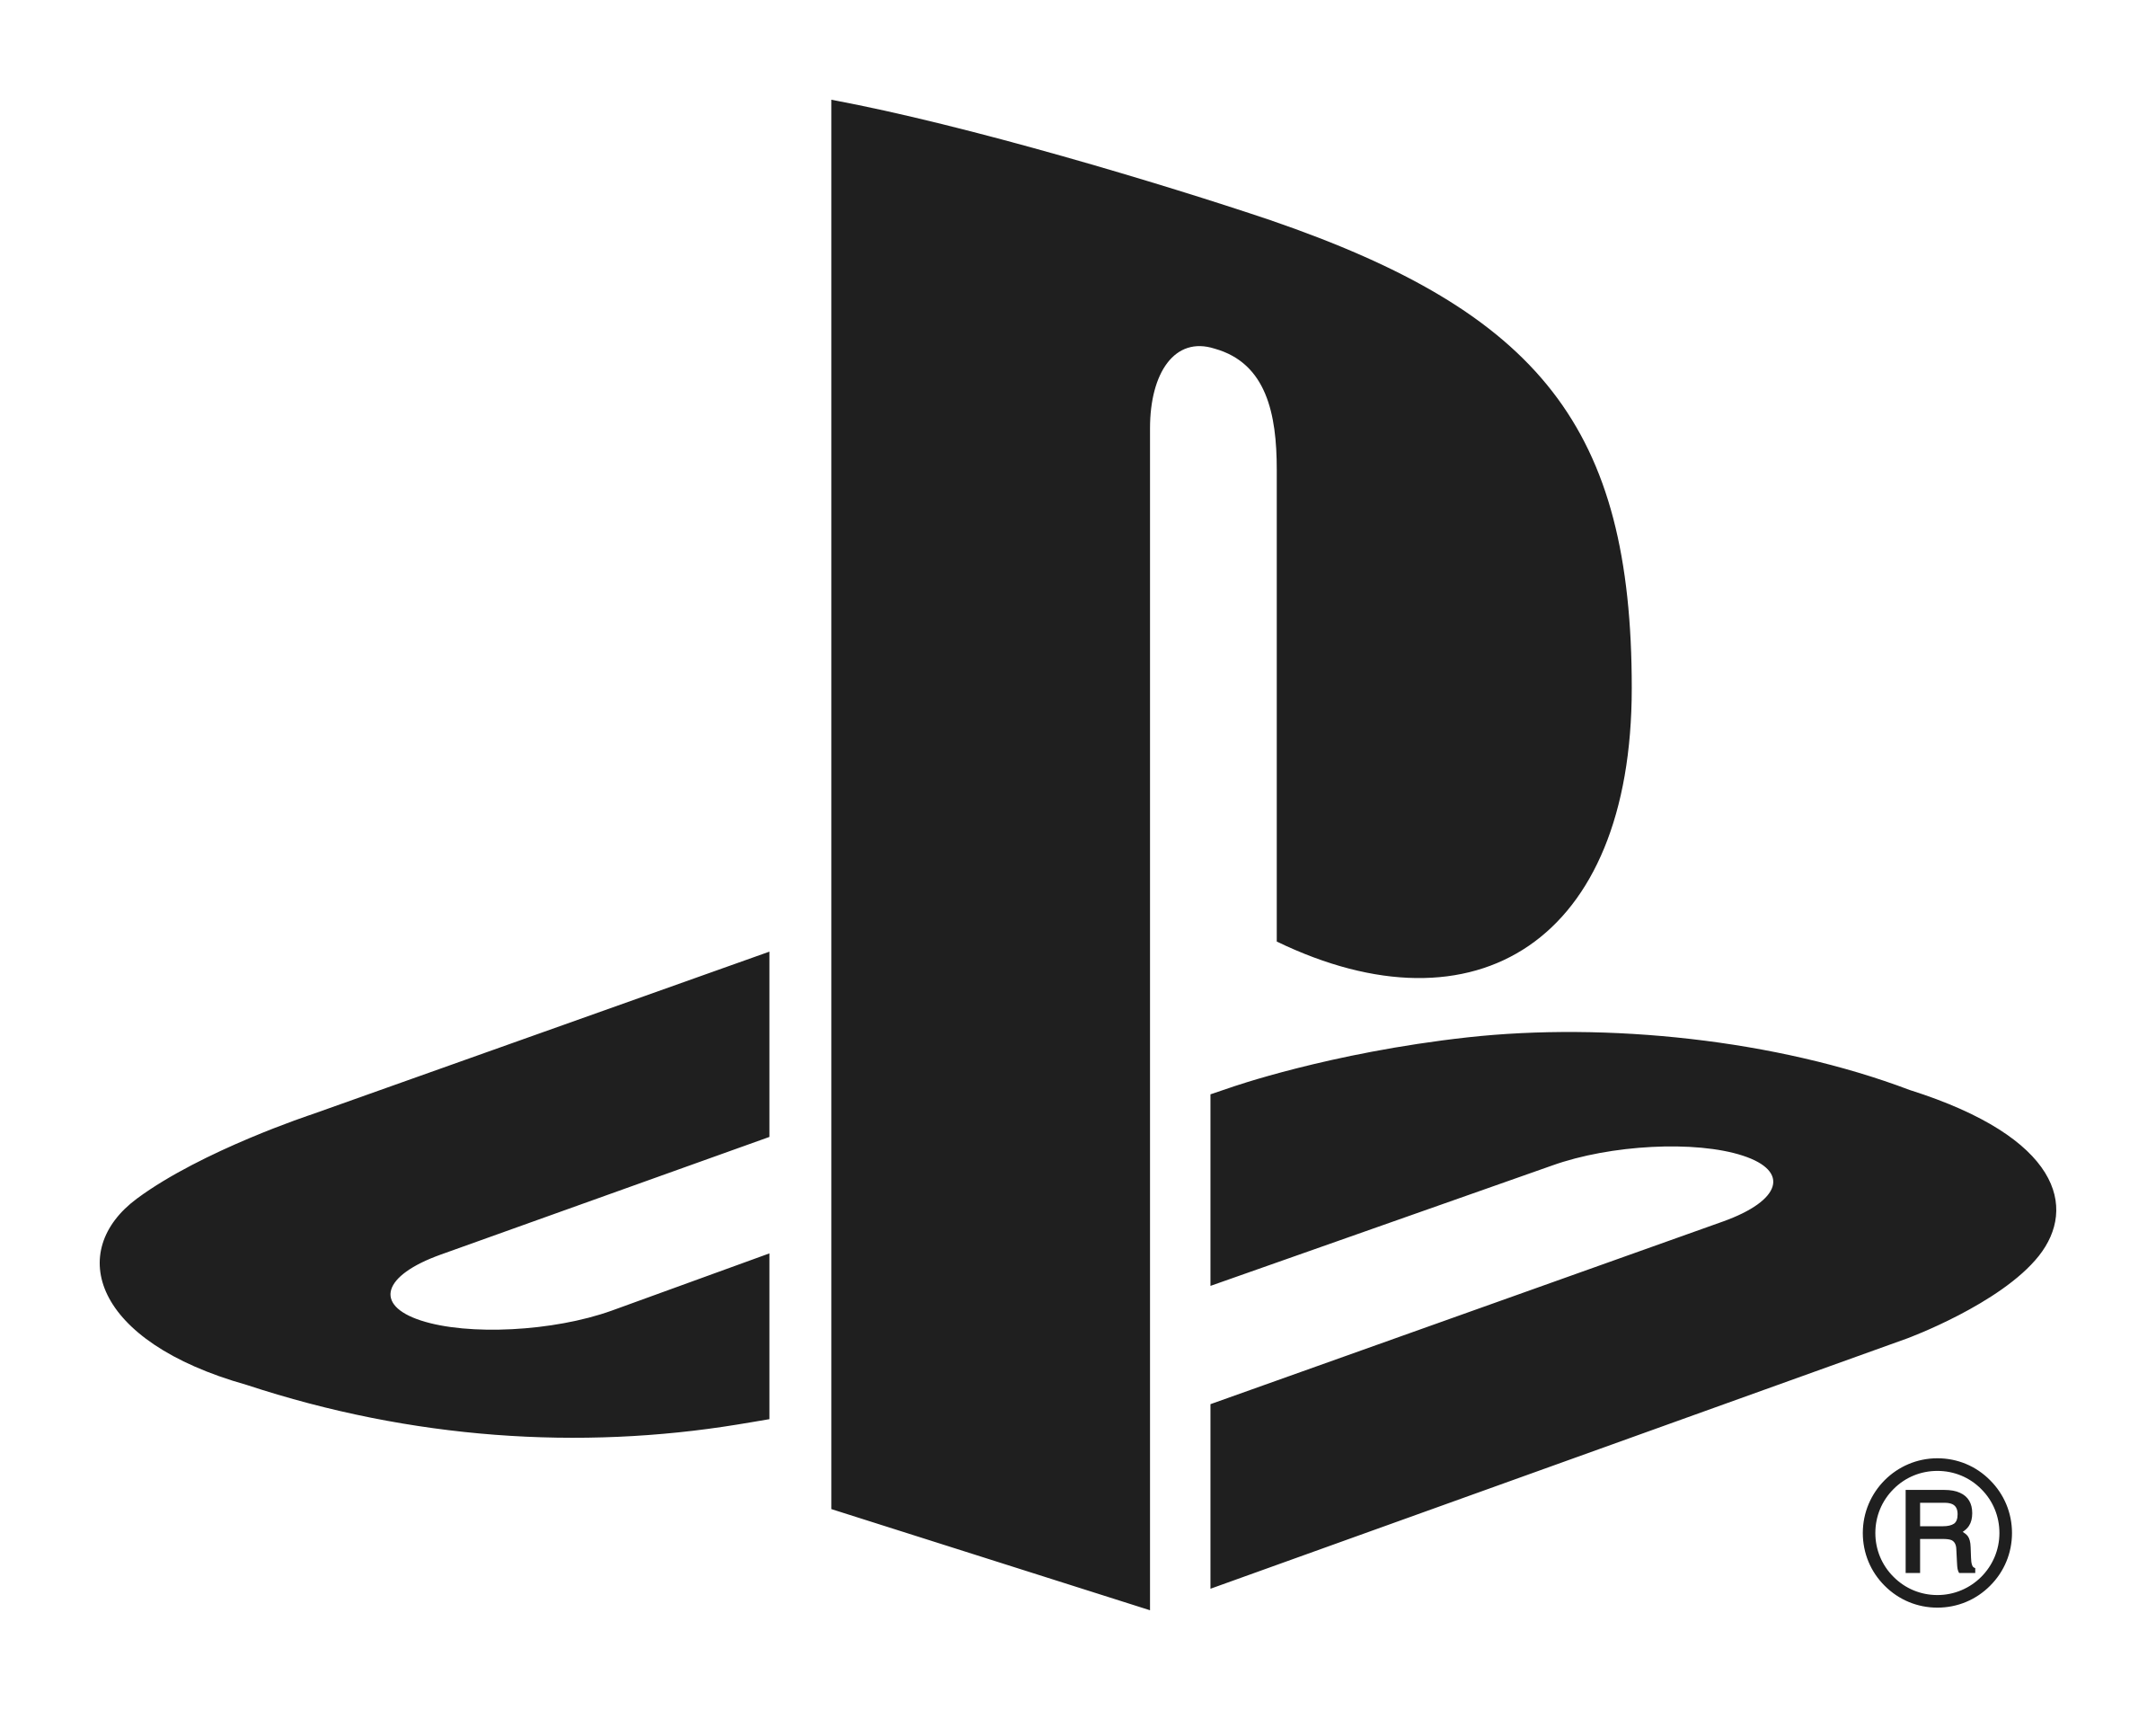 Playstation logo png. Transparent svg vector freebie